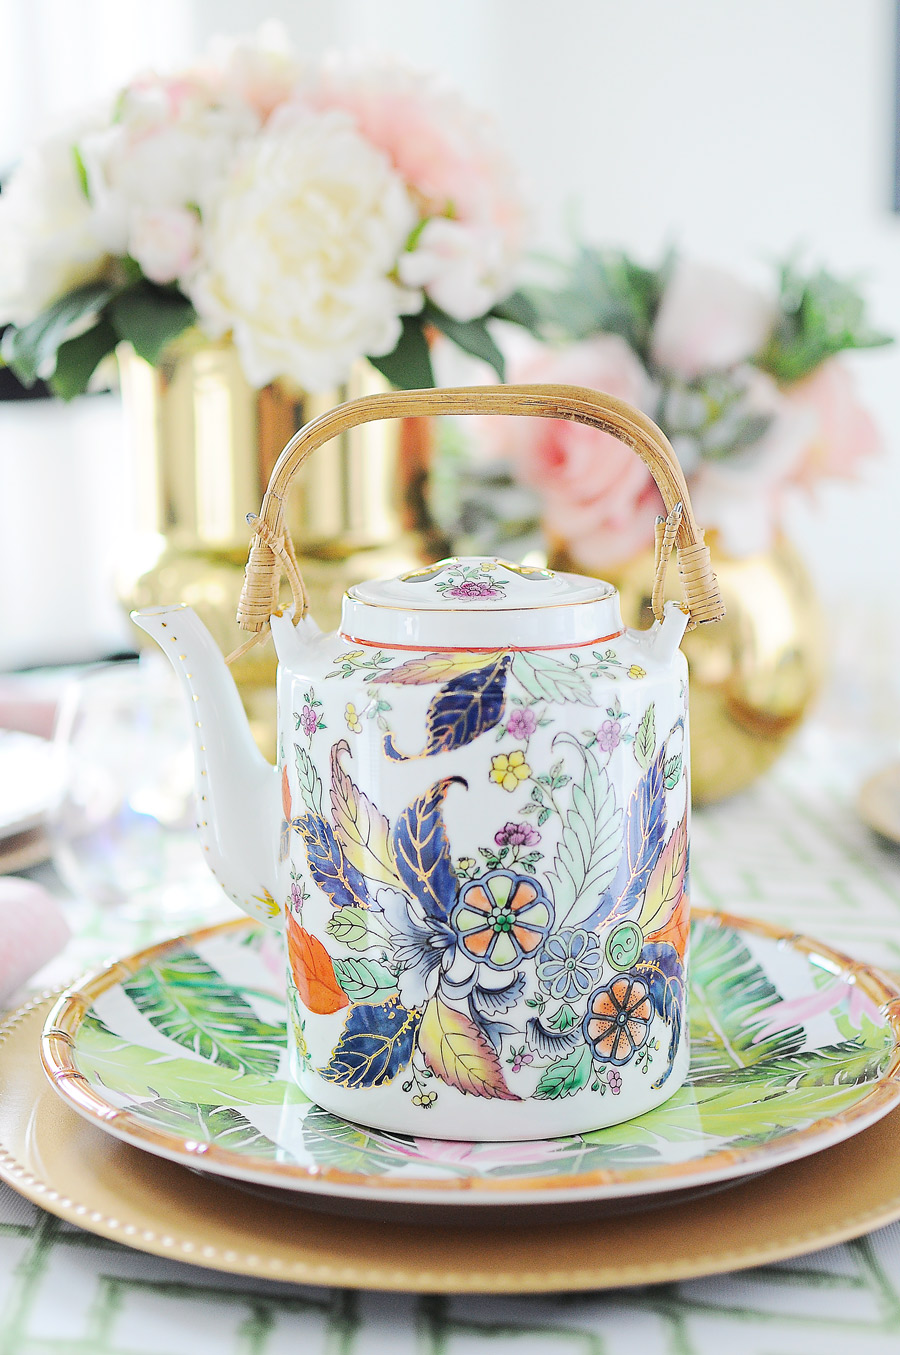 A gorgeous tobacco leaf teapot on a pink, green, white and gold chinoiserie inspired tablescape.